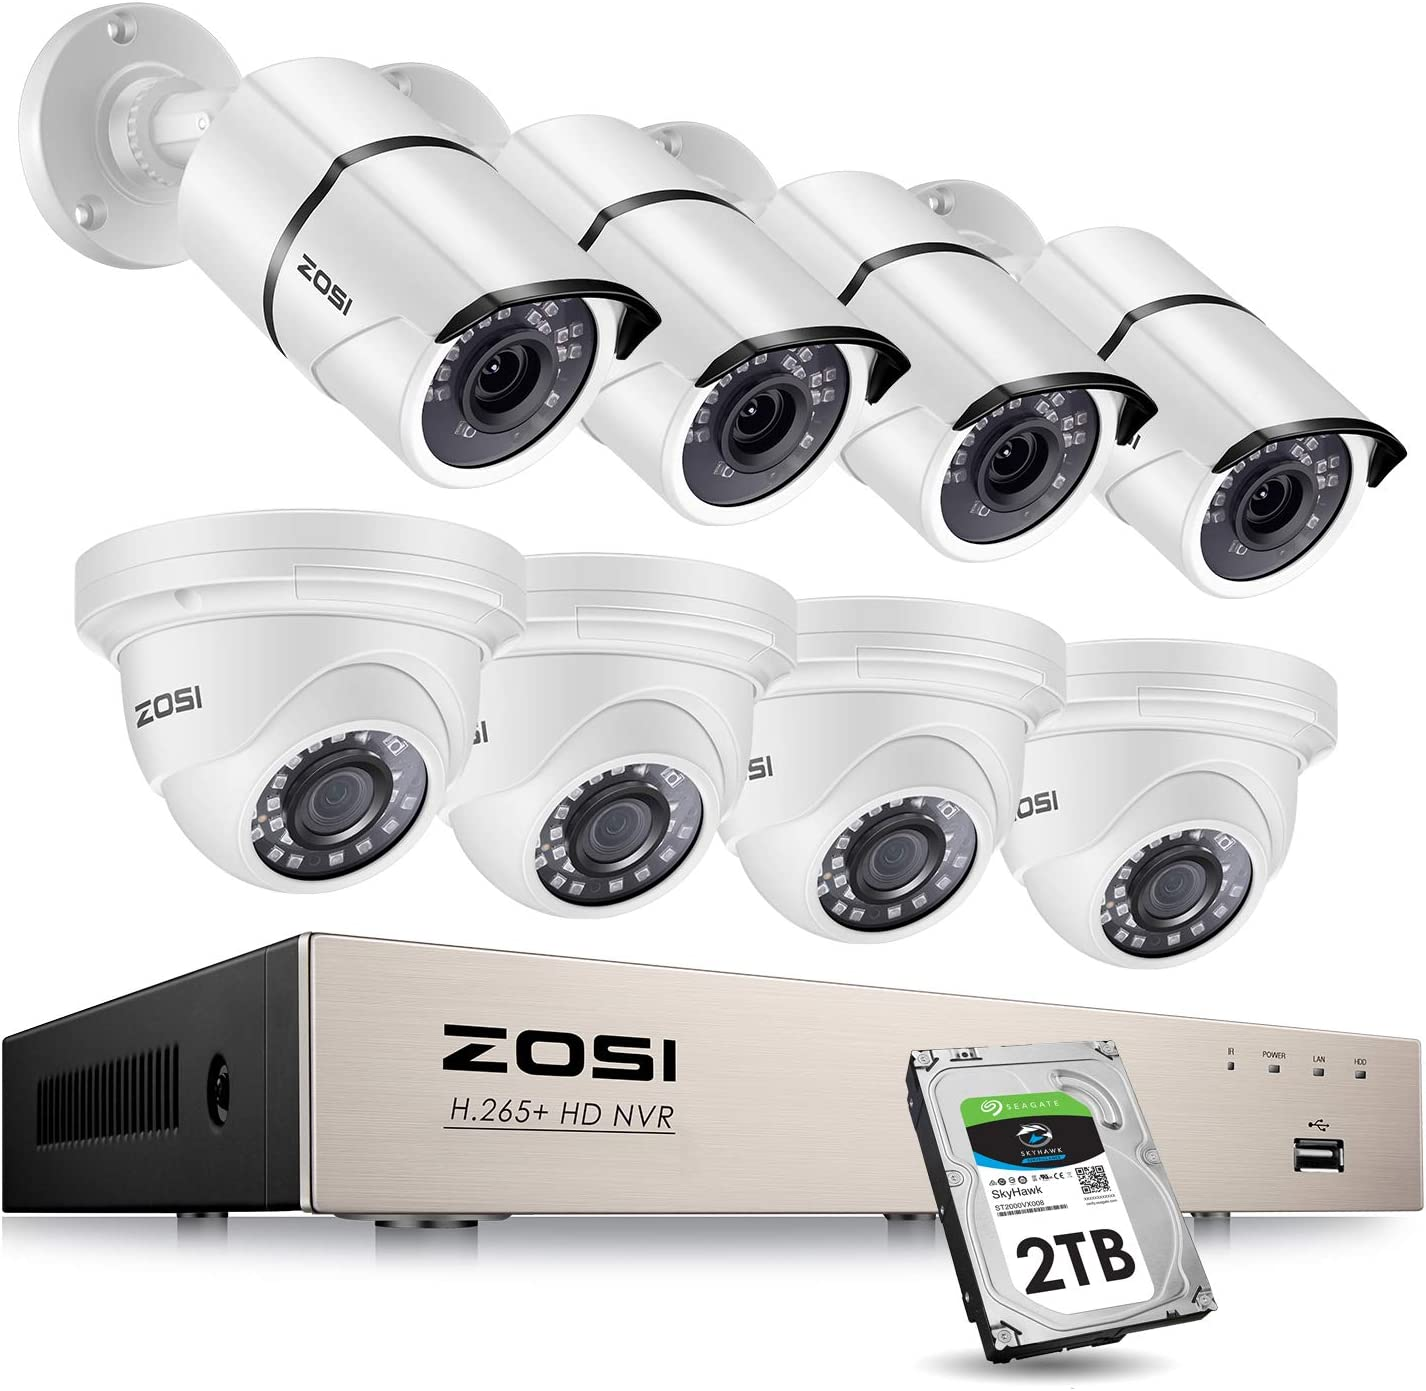 ZOSI 8CH 5MP PoE Security Camera System Outdoor with 2TB HDD, H.265+ 8Channel 5MP NVR Security System and 8pcs Wired 5MP Weatherproof PoE IP Cameras with 120ft Night Vision,Motion Alert,Remote Access